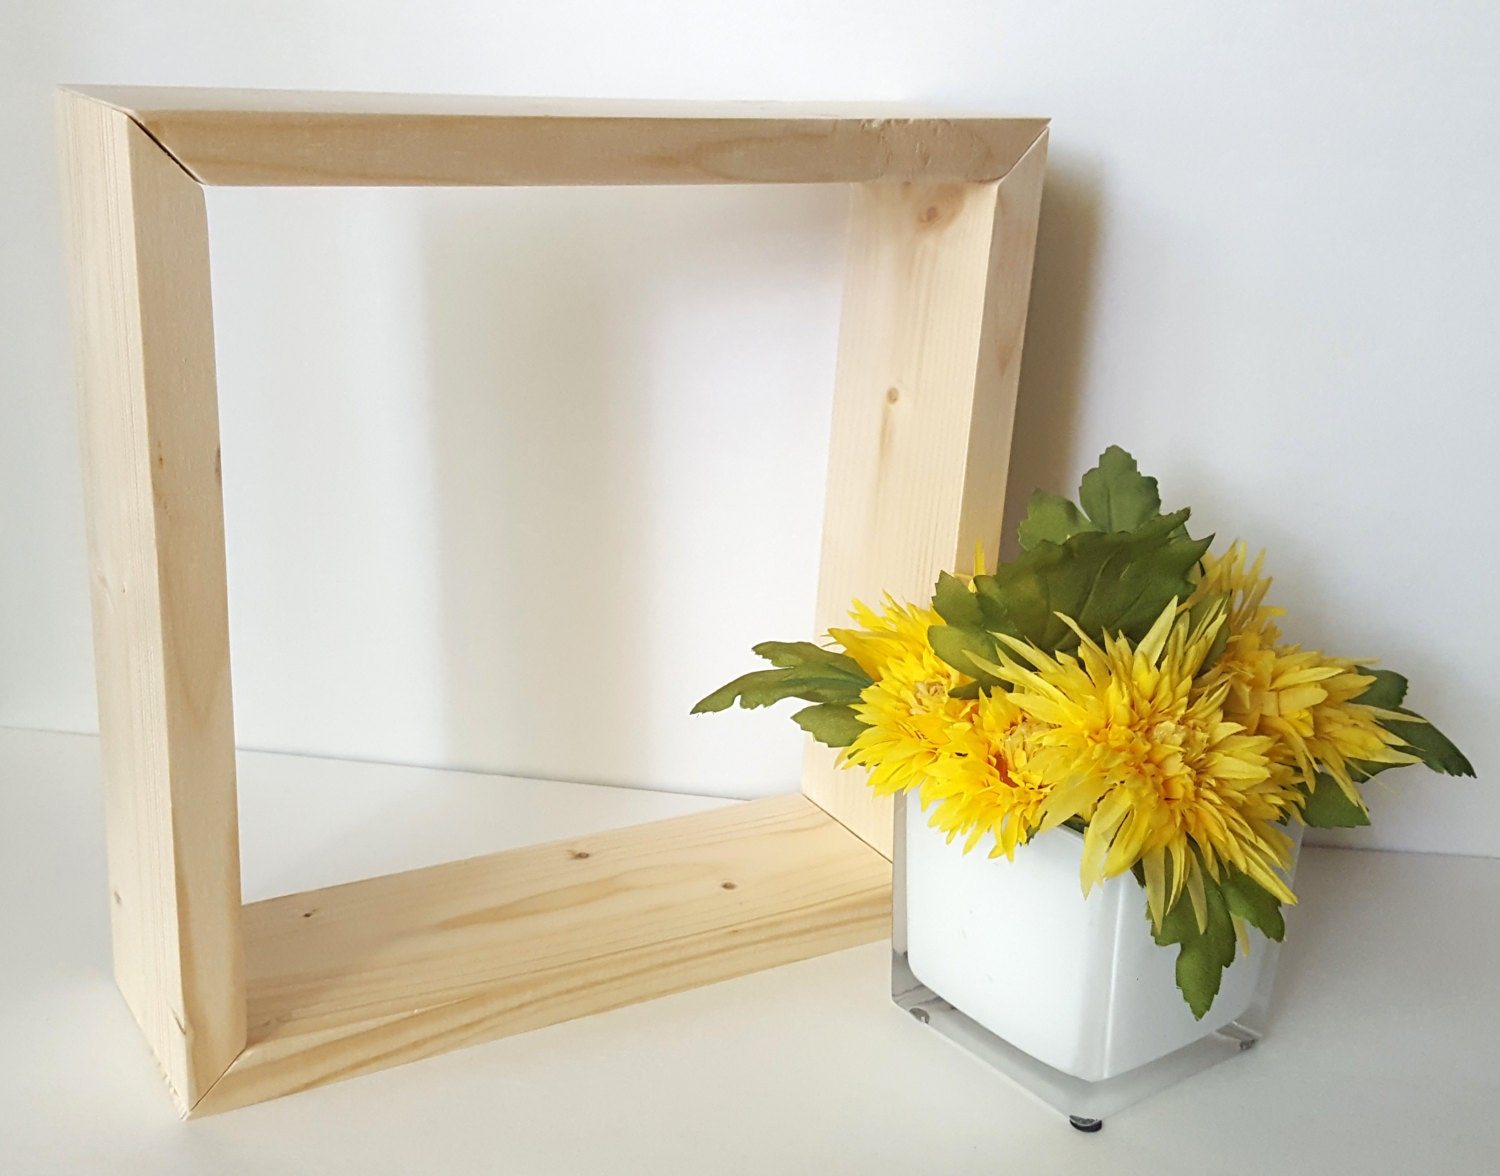 Unfinished wood picture frames craft - Unfinished Box Wood Crafts Diy Wood Wood Unfinished Shadow Box Untreated